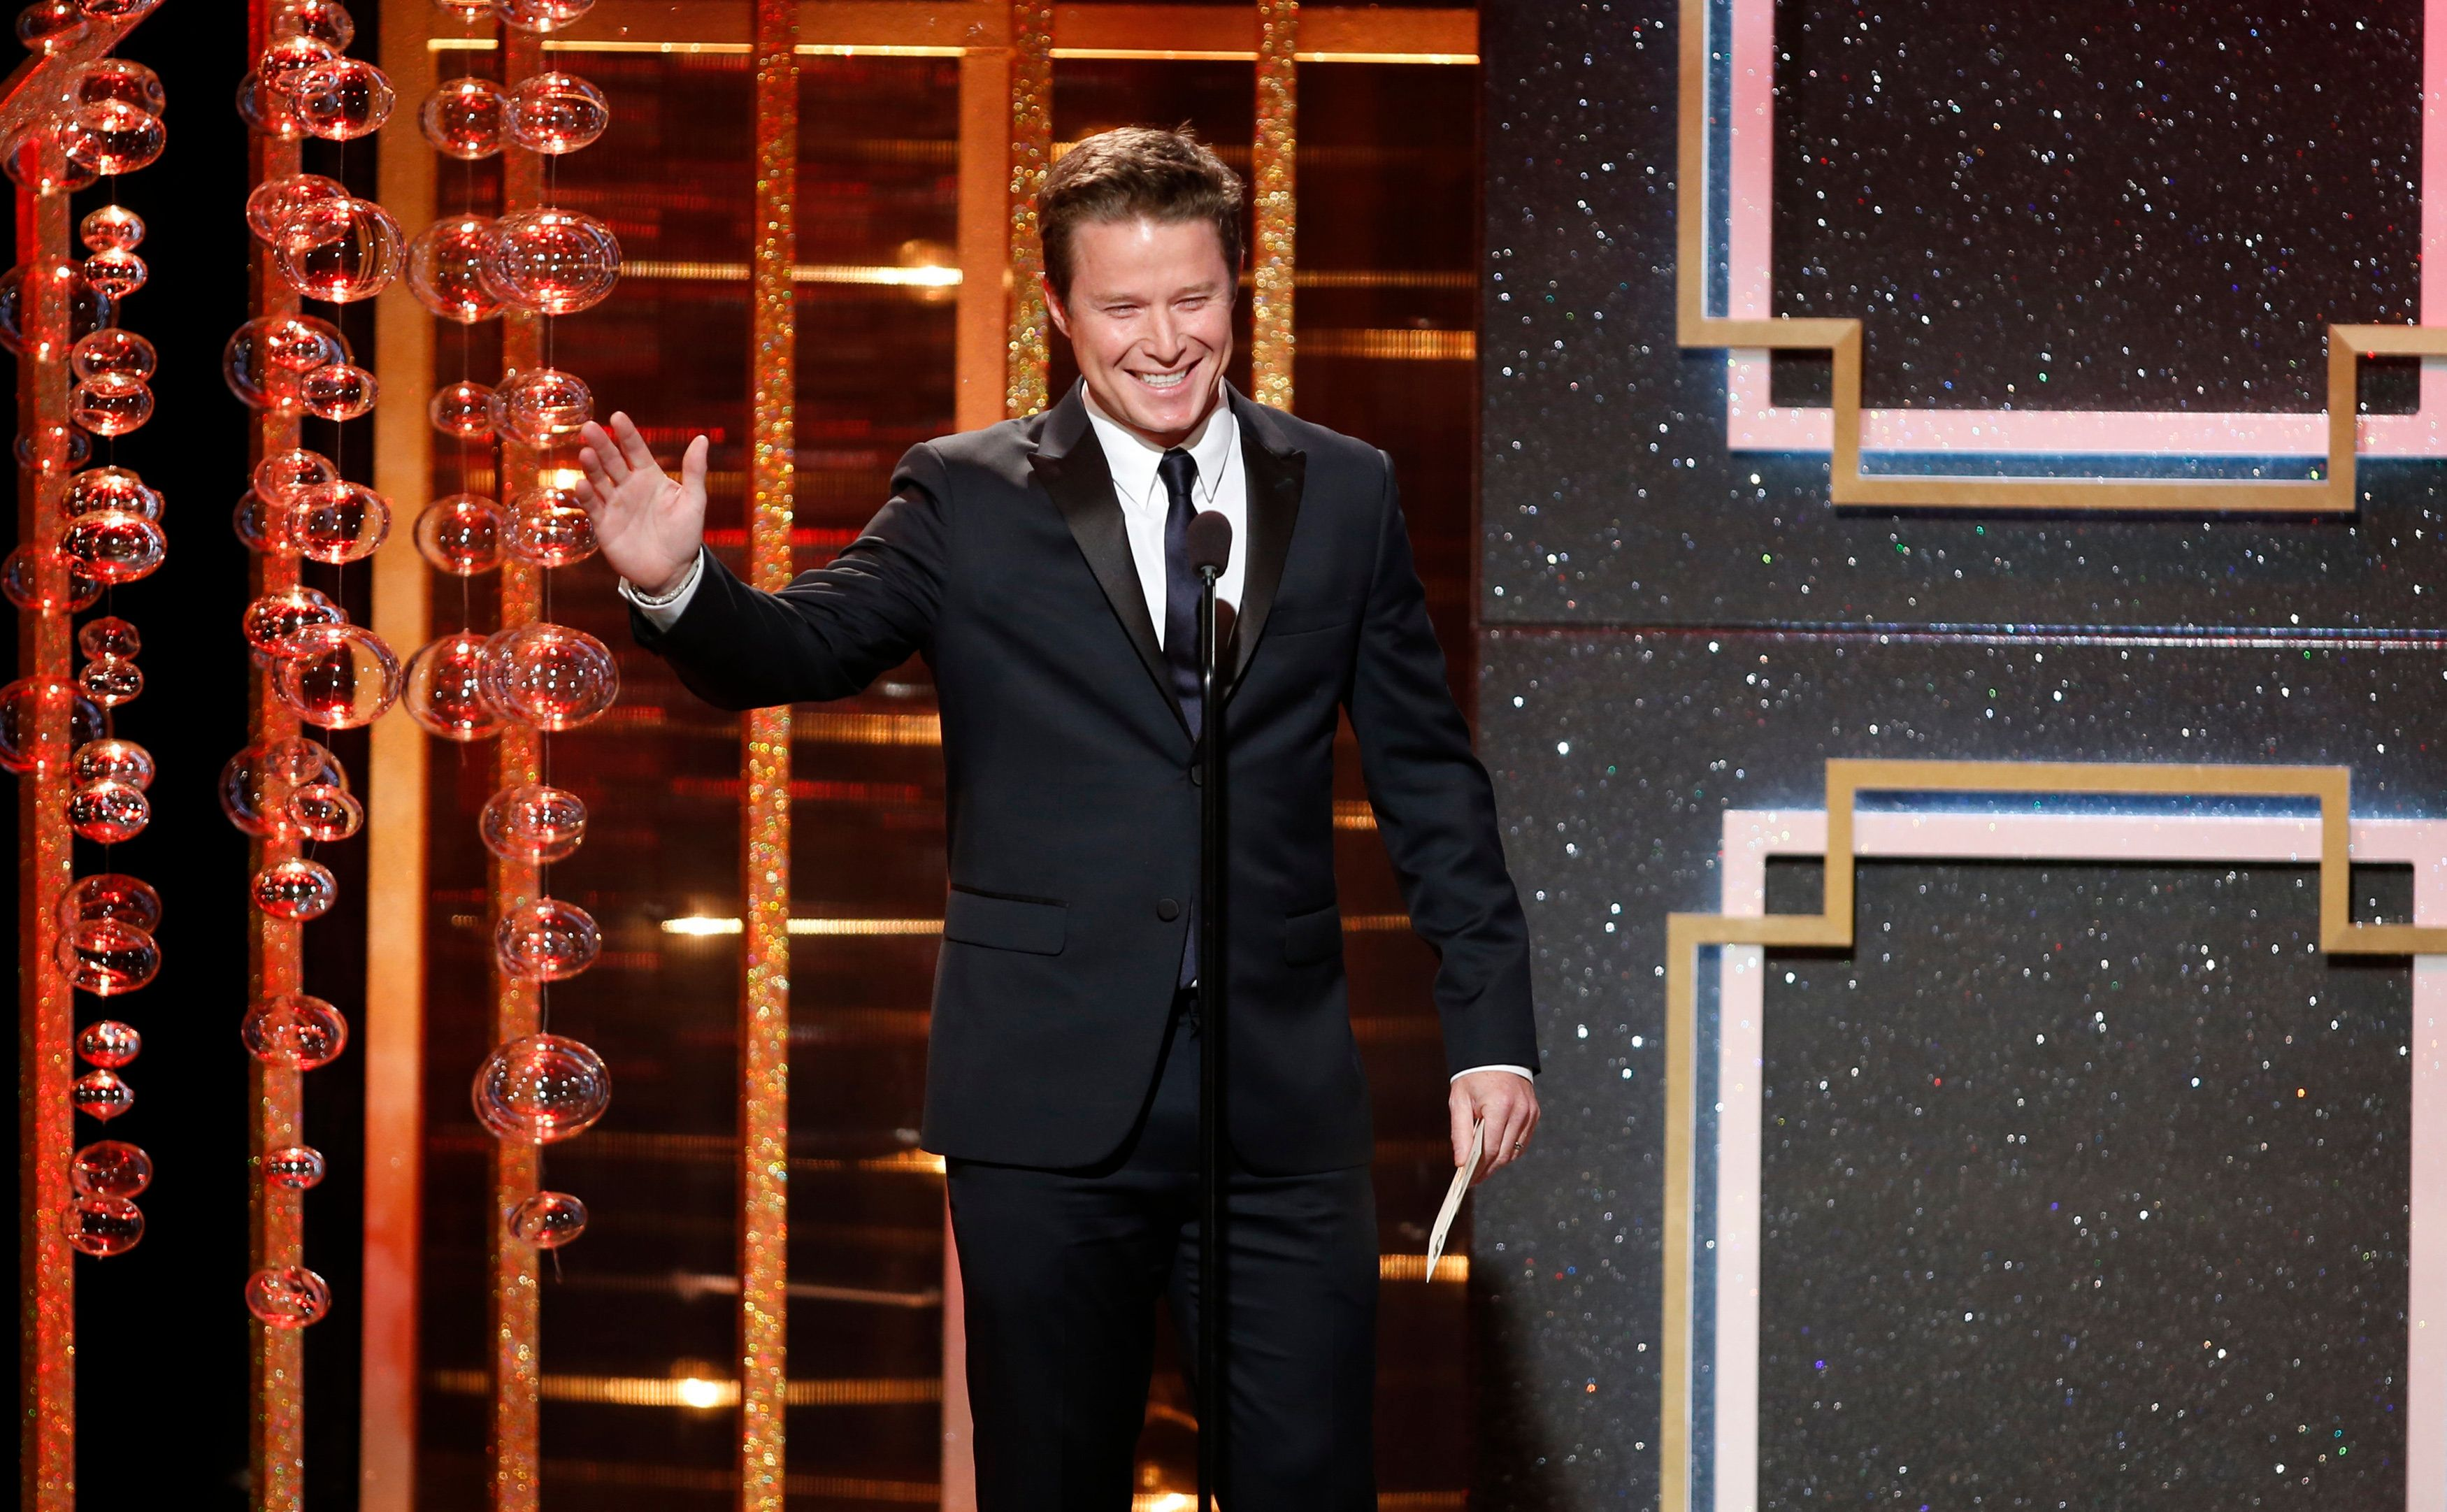 Billy Bush presents the award for outstanding supporting actor in a drama series during the 41st Annual Daytime Emmy Awards in Beverly Hills, California June 22, 2014.   REUTERS/Danny Moloshok (UNITED STATES  - Tags: ENTERTAINMENT)  (DAYTIMEEMMYAWARDS-SHOW)